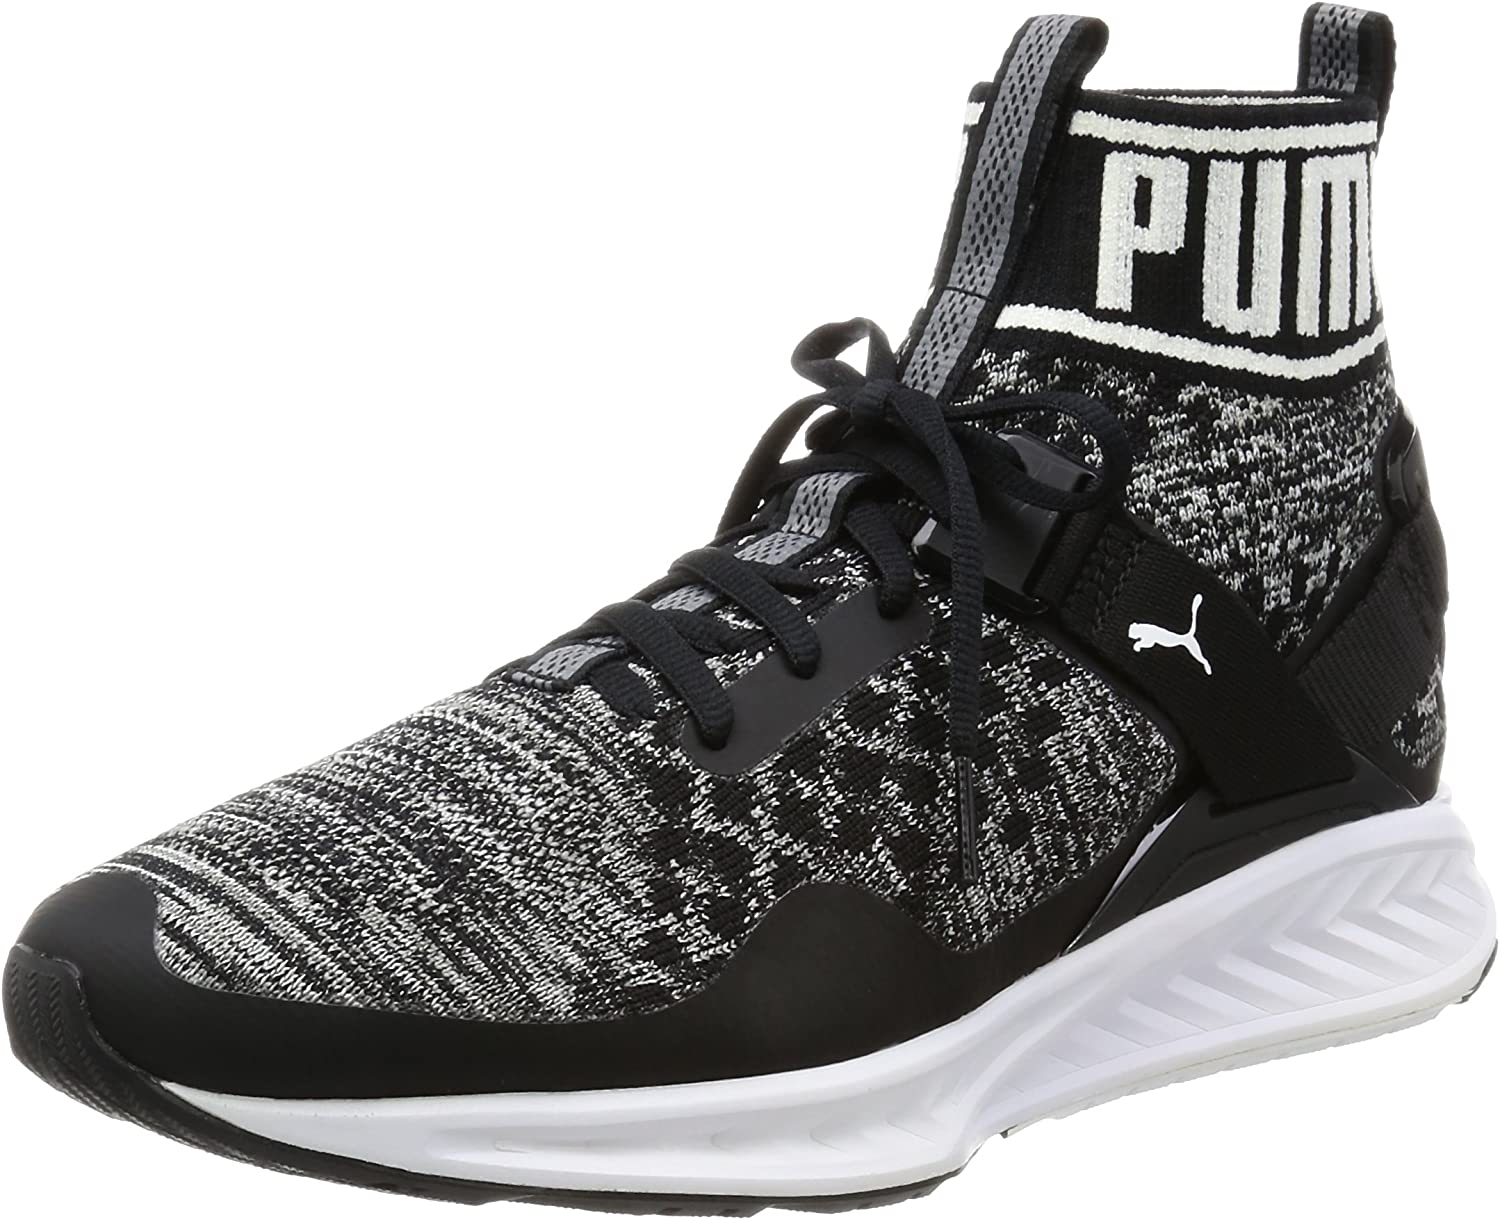 Puma Unisex Adults' Ignite Evoknit Competition Running shoes